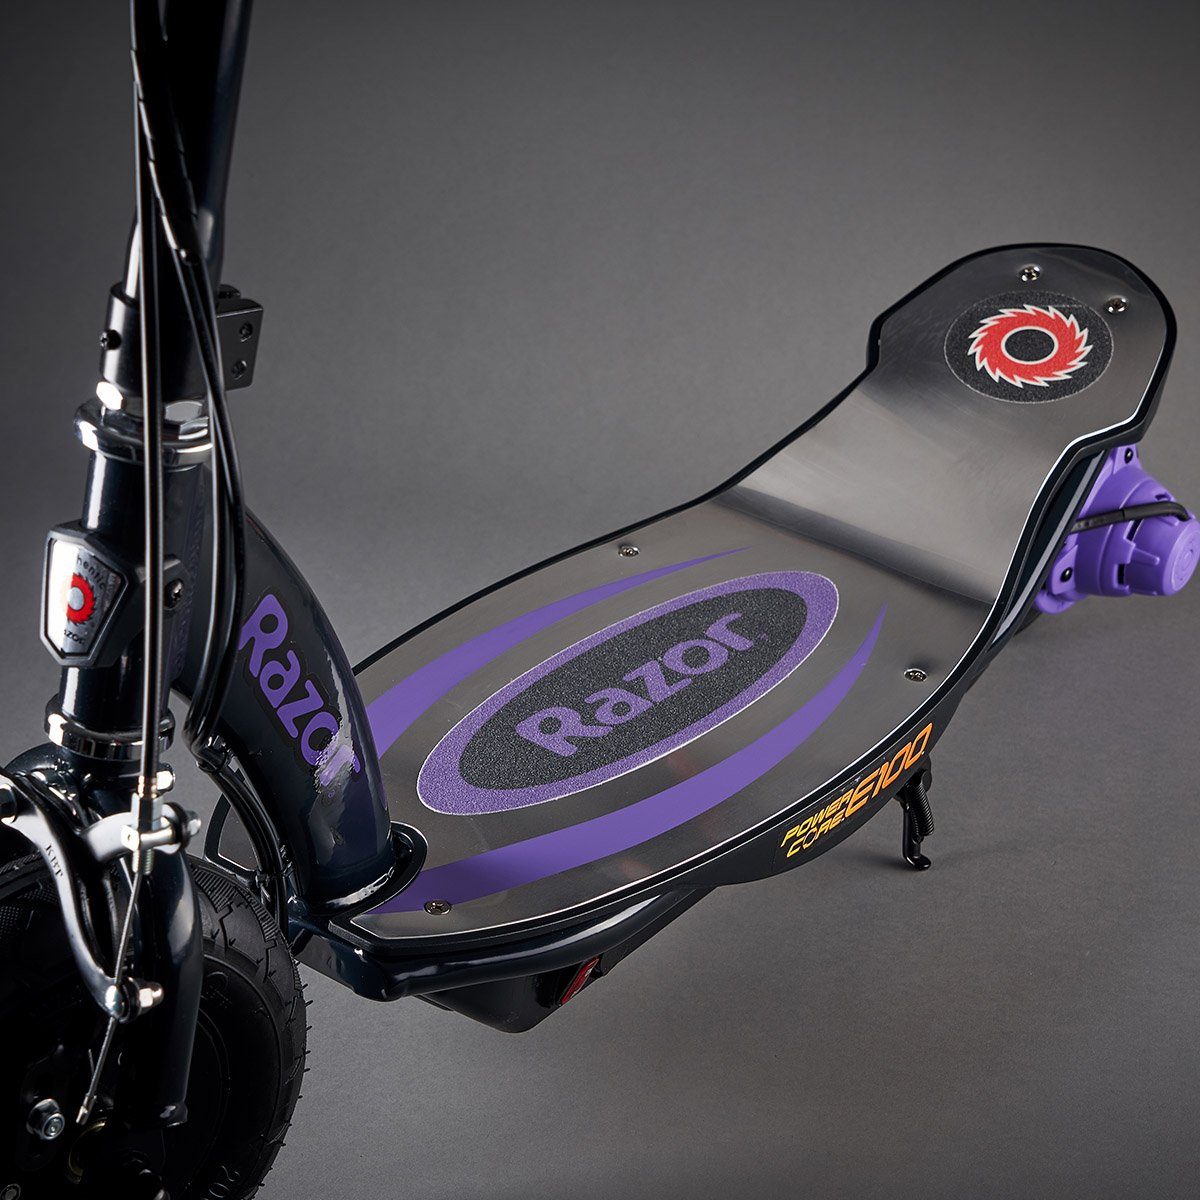 Purple Razor e100 scooter for 9 and 10 year old children.